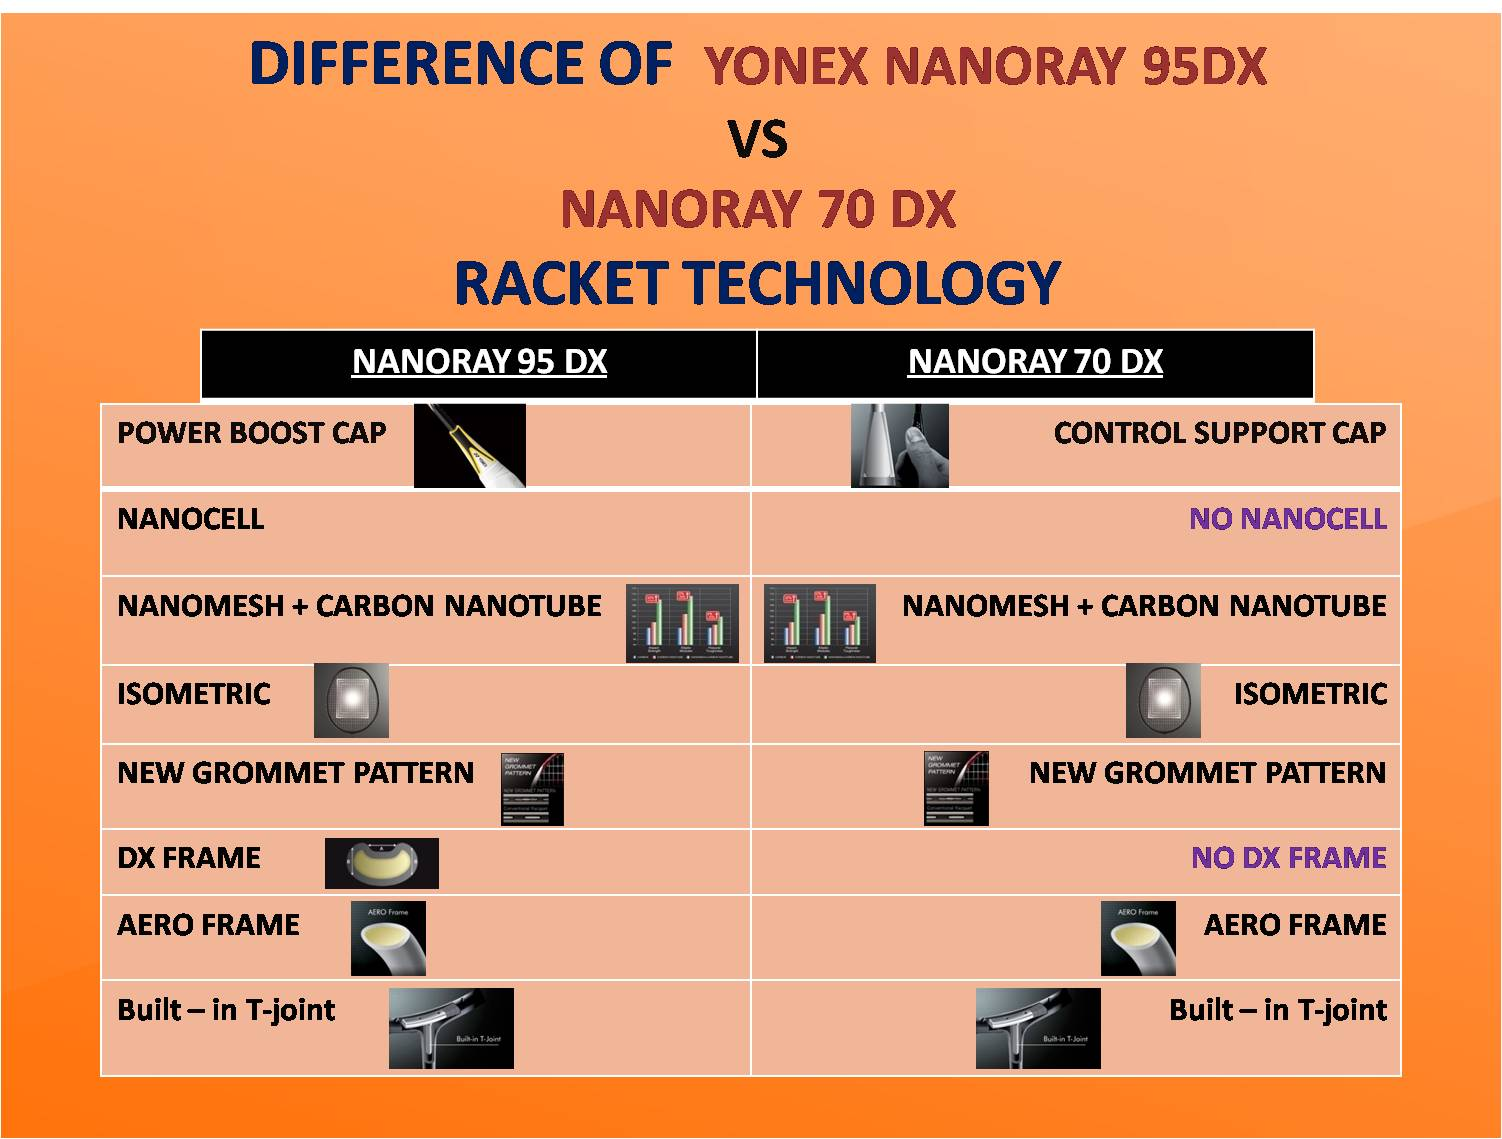 COMPARISON OF ACYONEX NANORAY 95 DX VS YONEX NANORAY 70 DX TECHNOLOGY_1